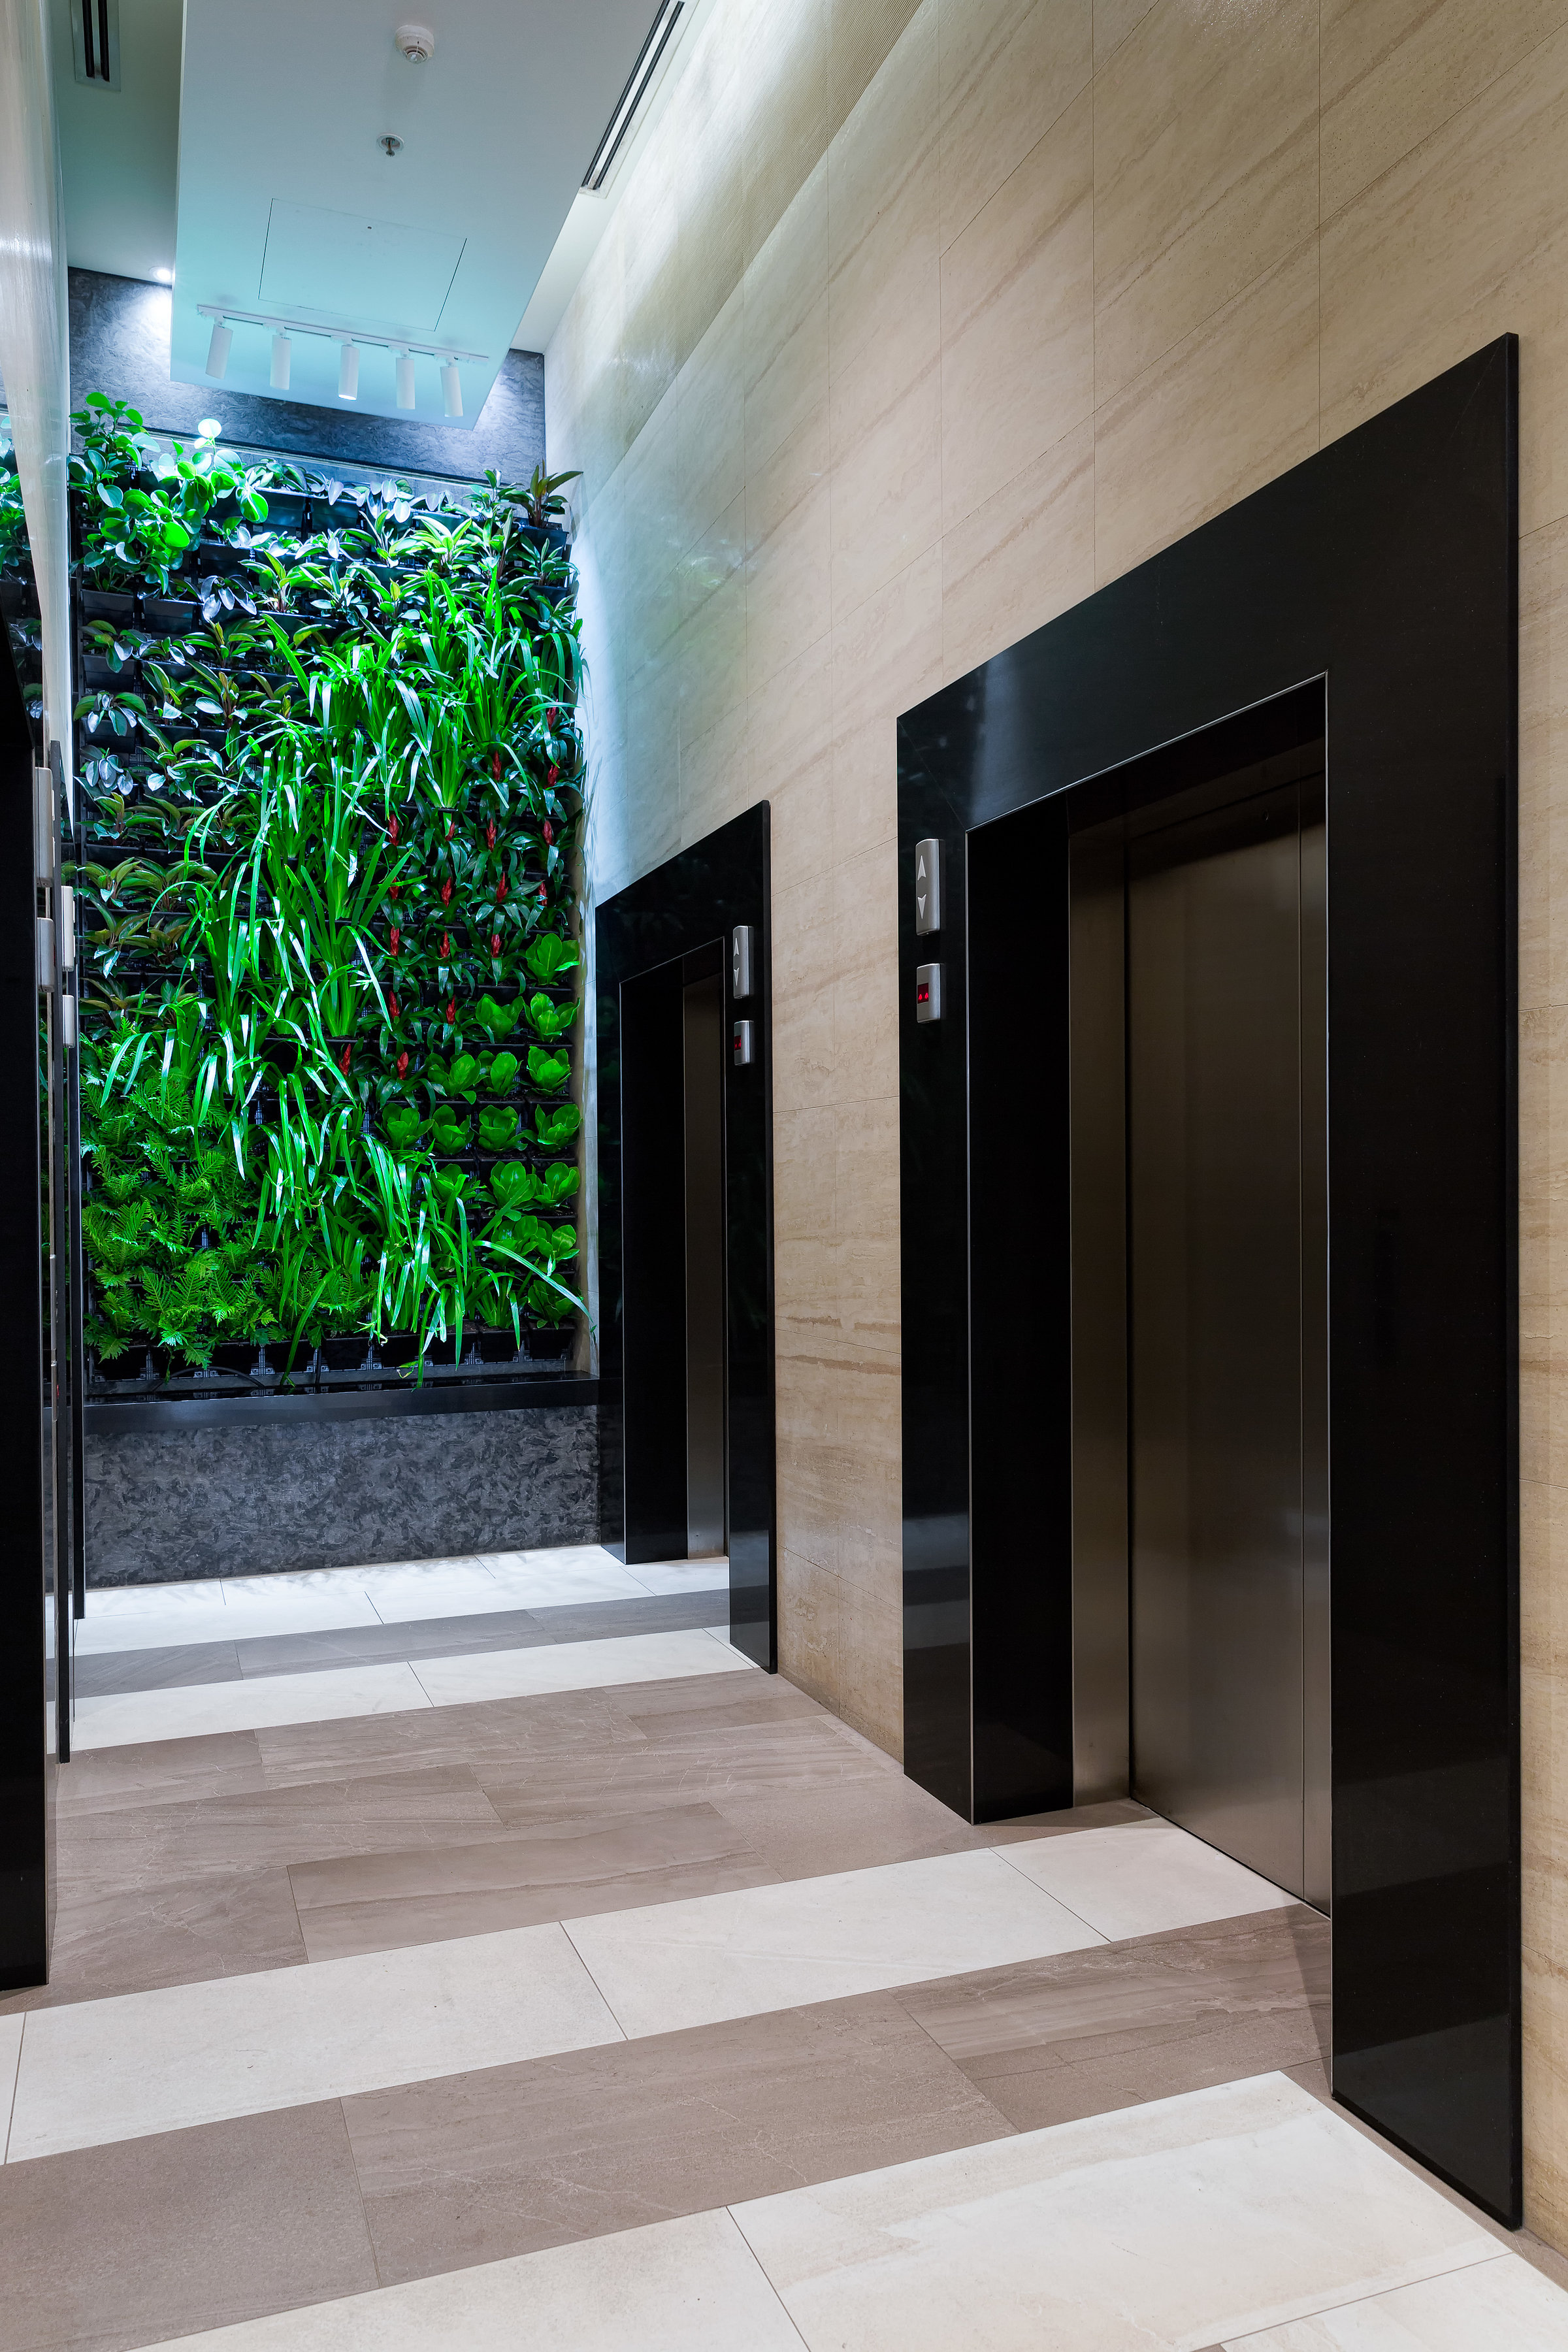 MantraGreenWall-5.jpg